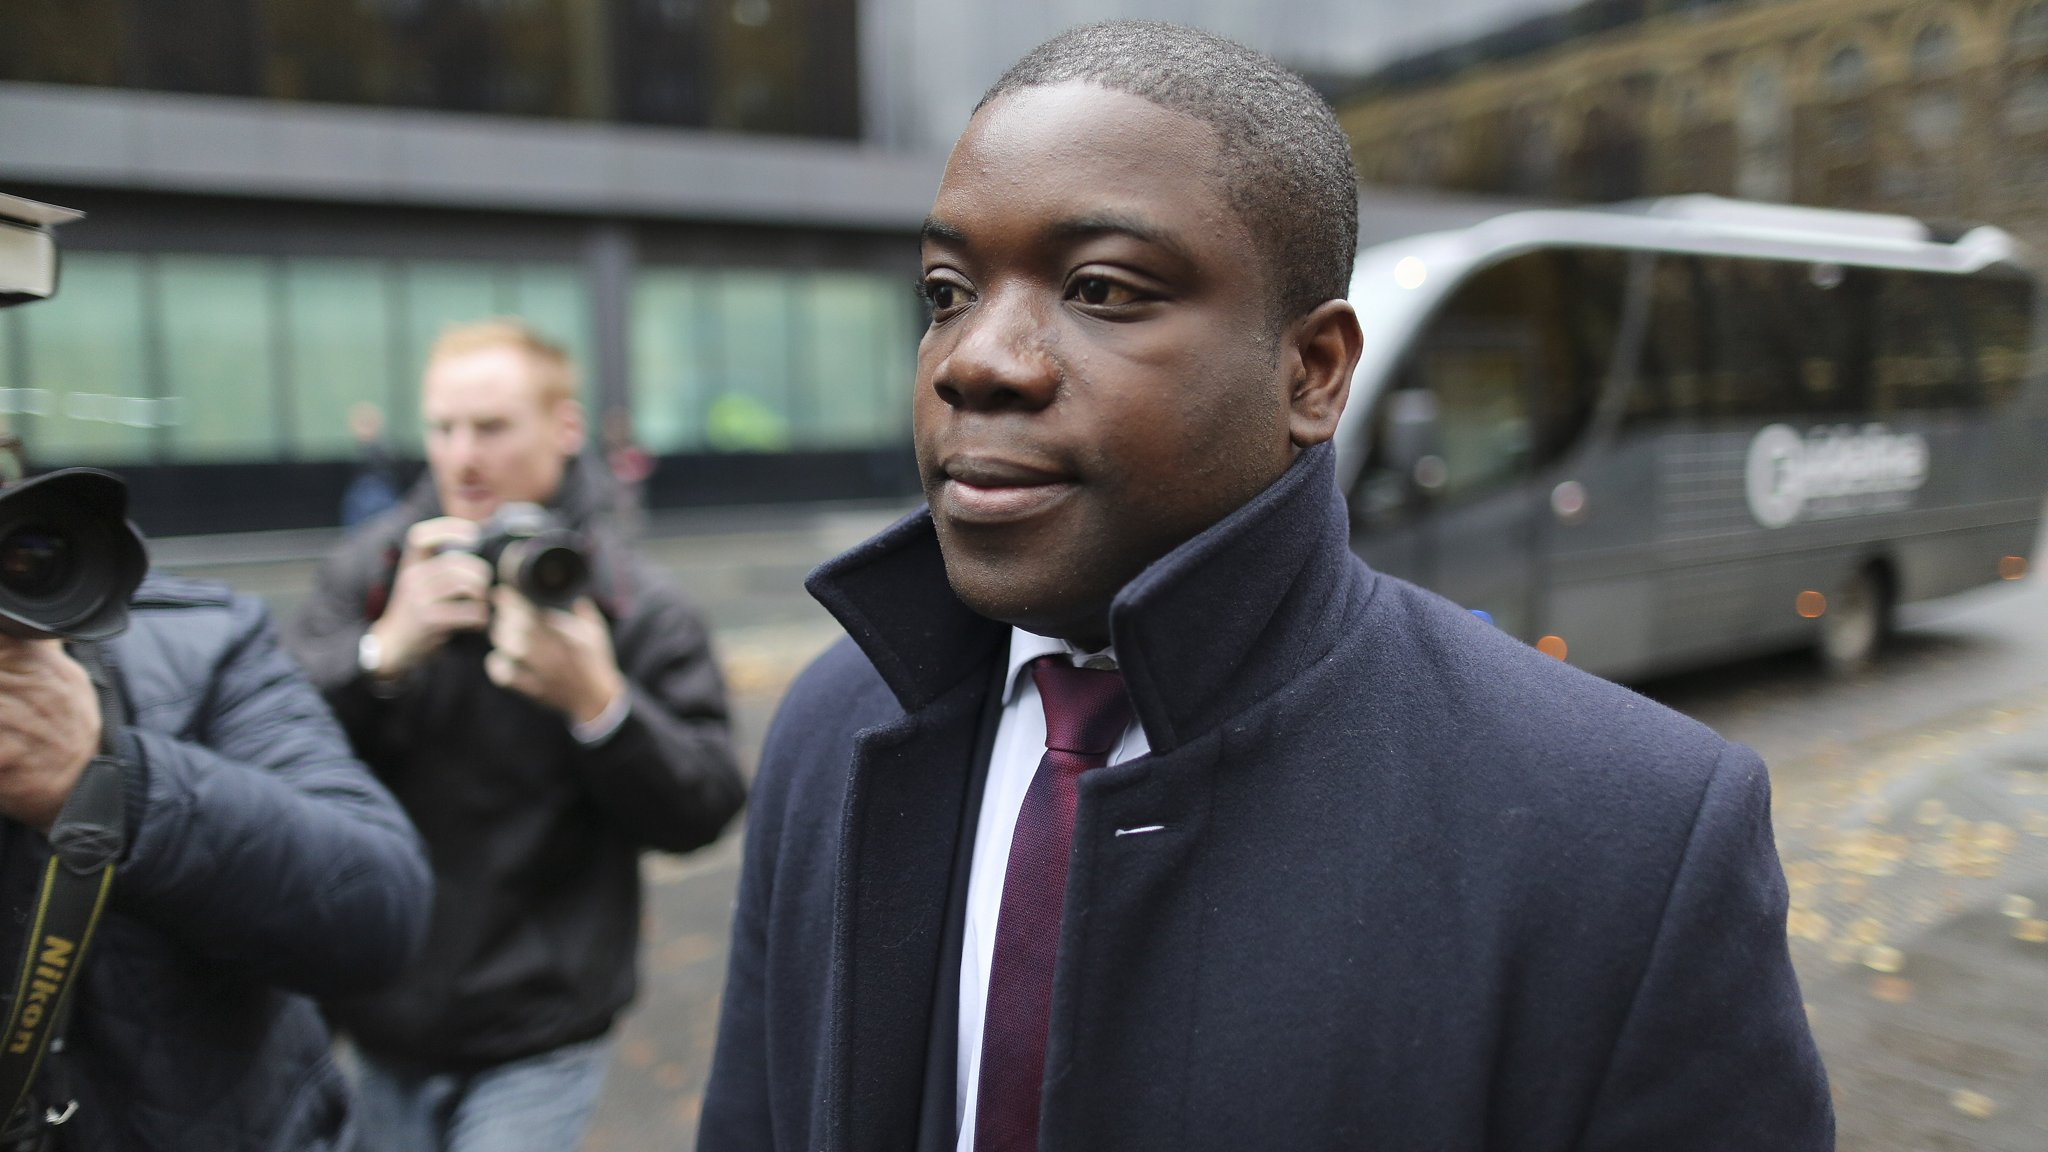 Adoboli to be freed from UK immigration centre